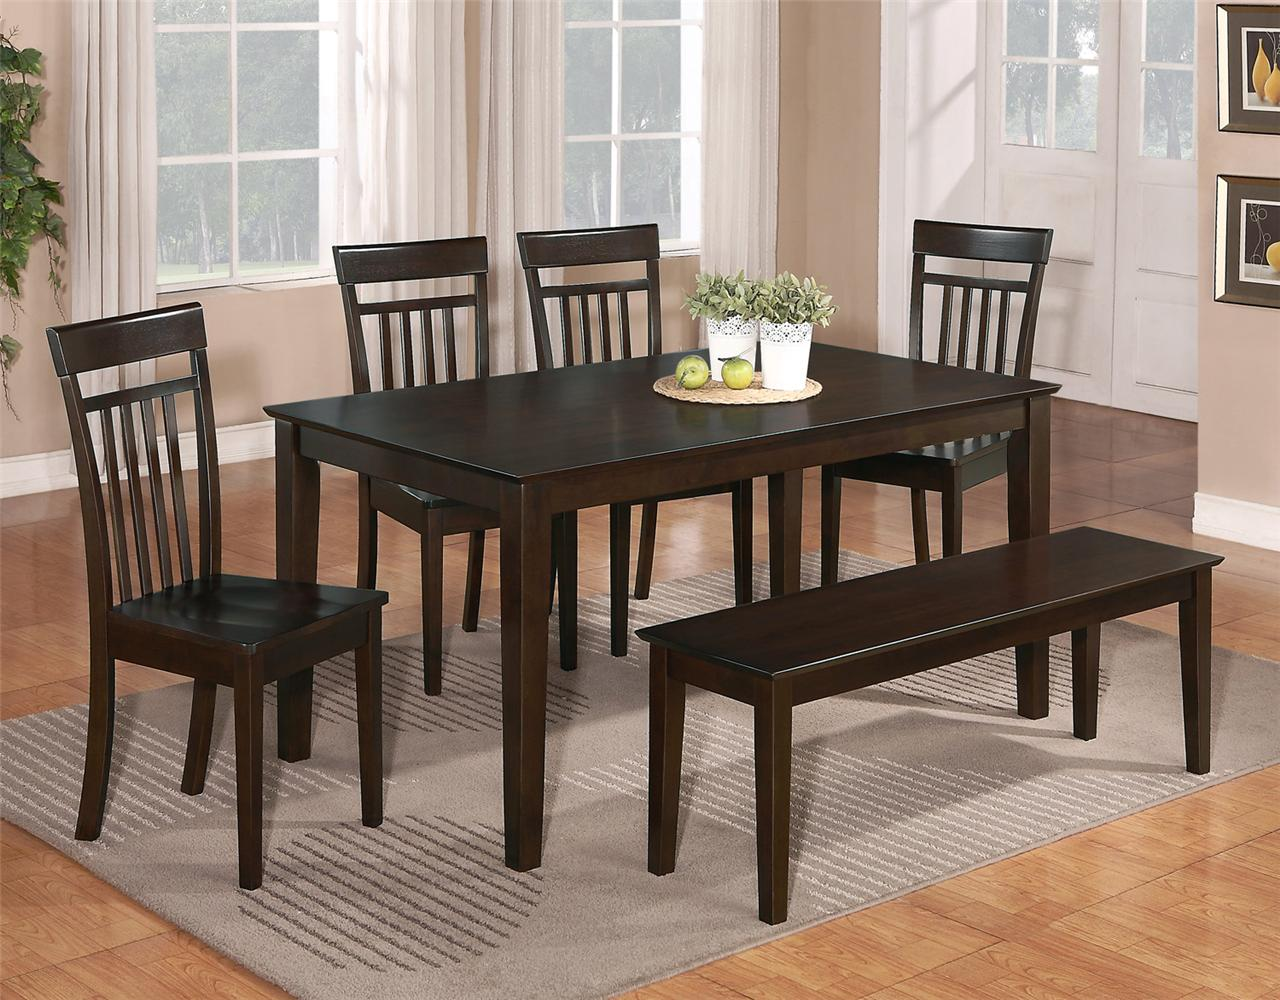 6 pc dinette kitchen dining room set table w 4 wood chair for Dining room sets for 6